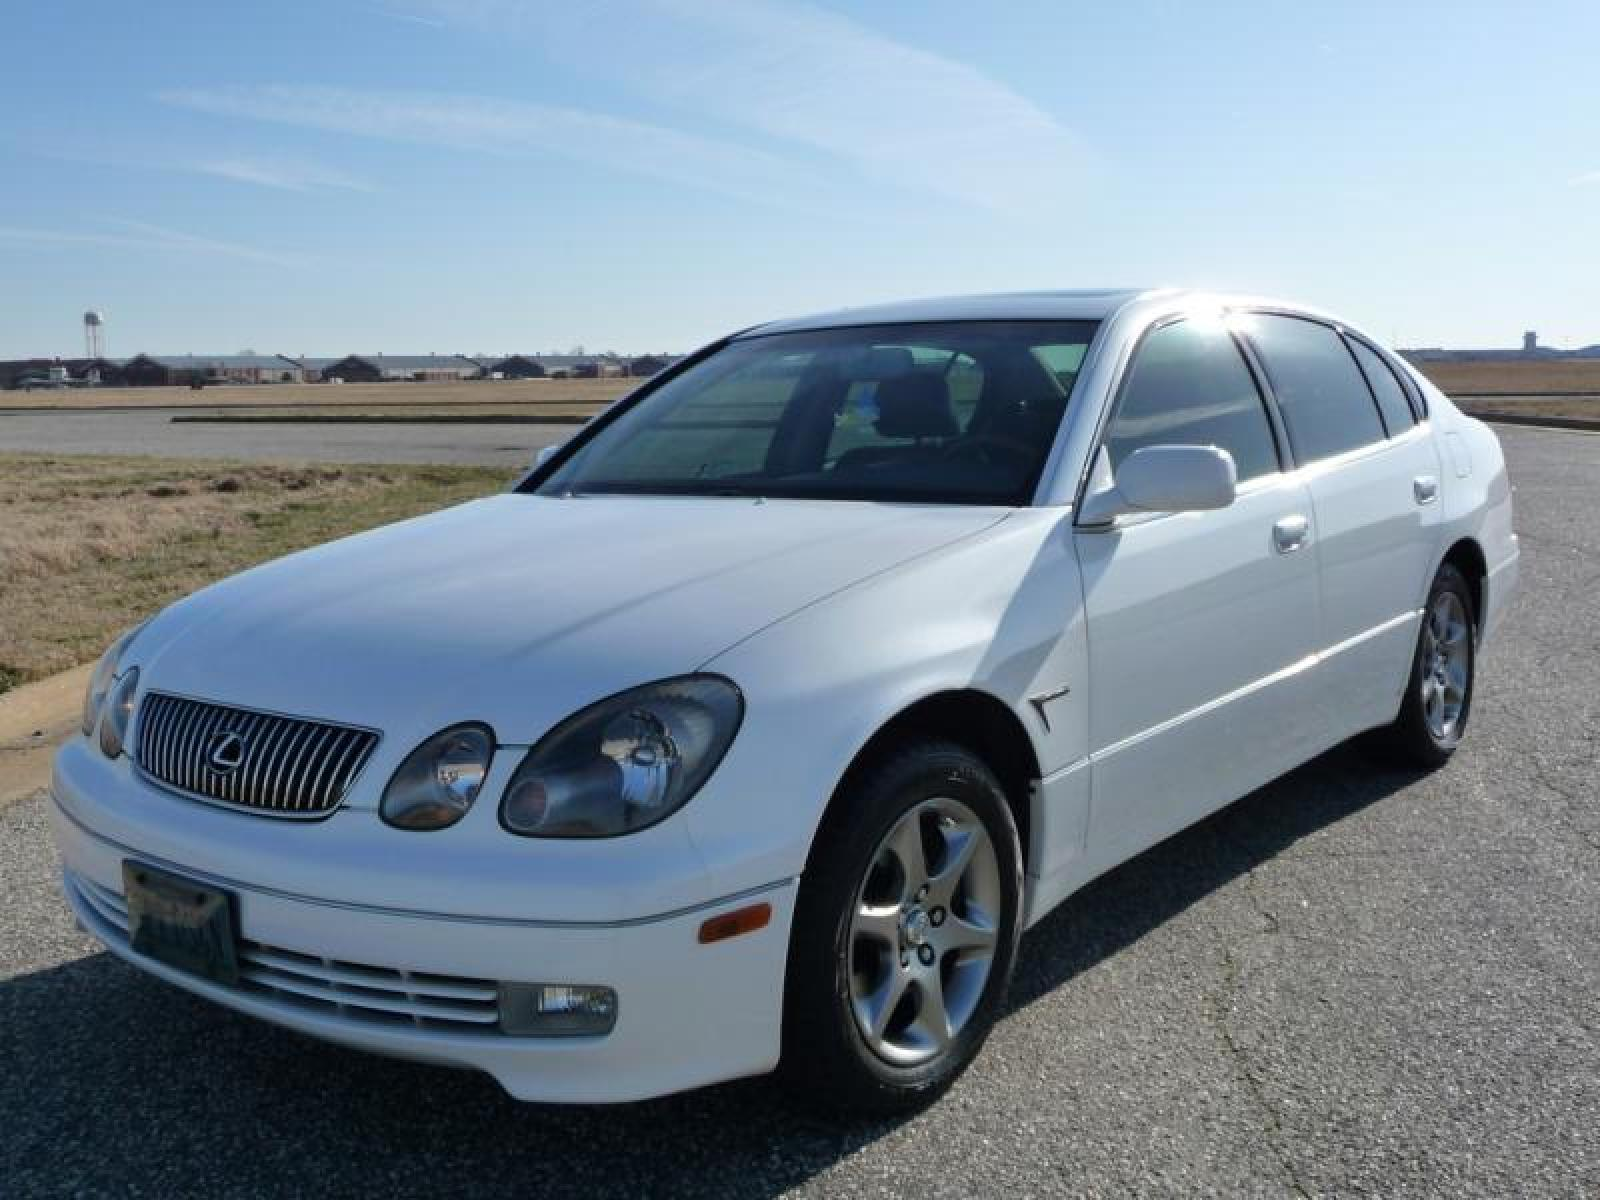 2003 Lexus GS 300 - Information and photos - ZombieDrive